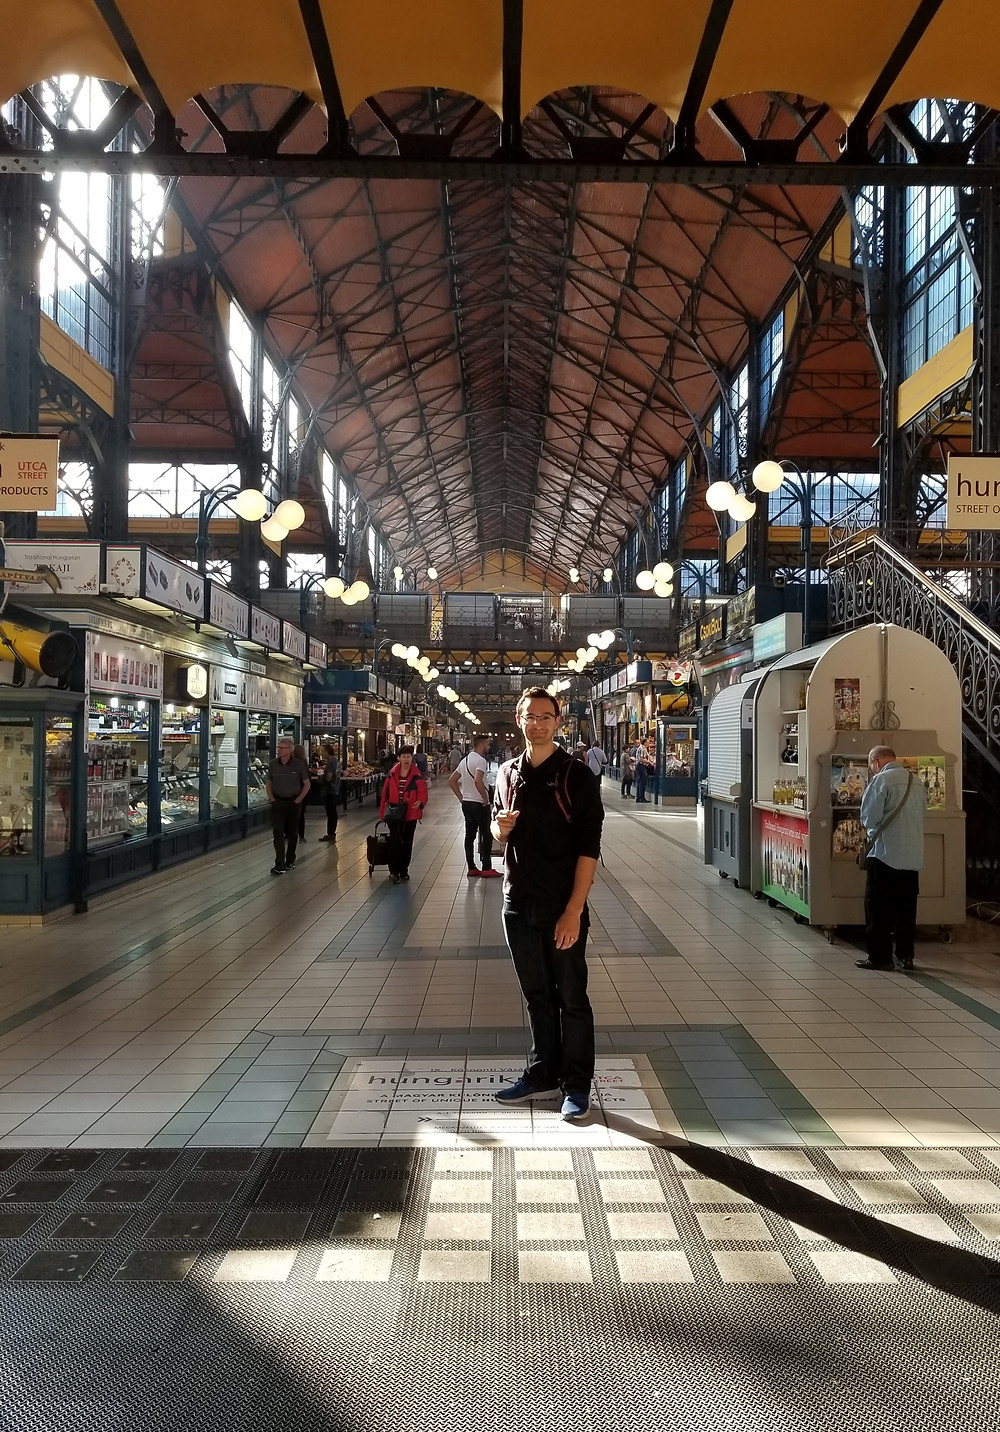 Anthony at the entrance of the Grand Market, shop stalls on both sides with sunlight streaming through the roof